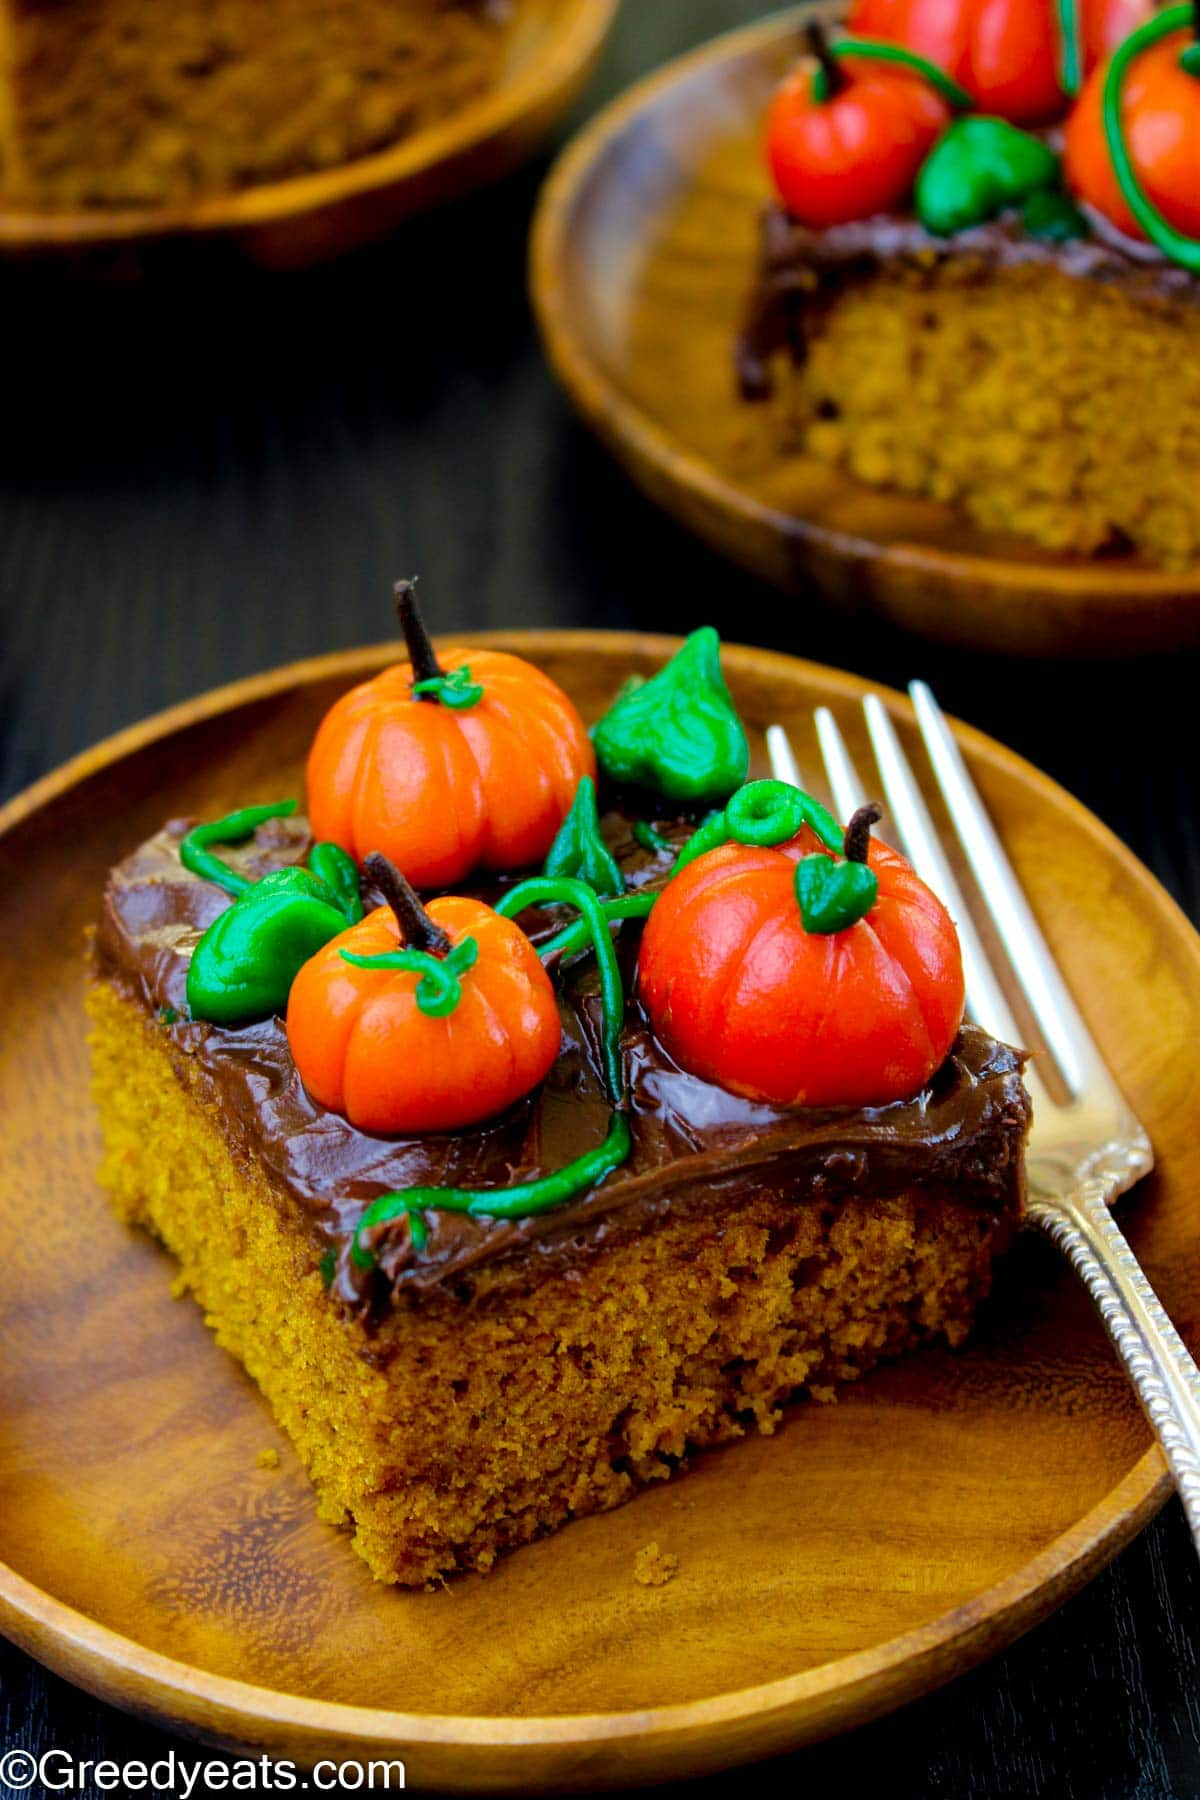 A slice of soft and moist Pumpkin Cake topped with whipped chocolate frosting.